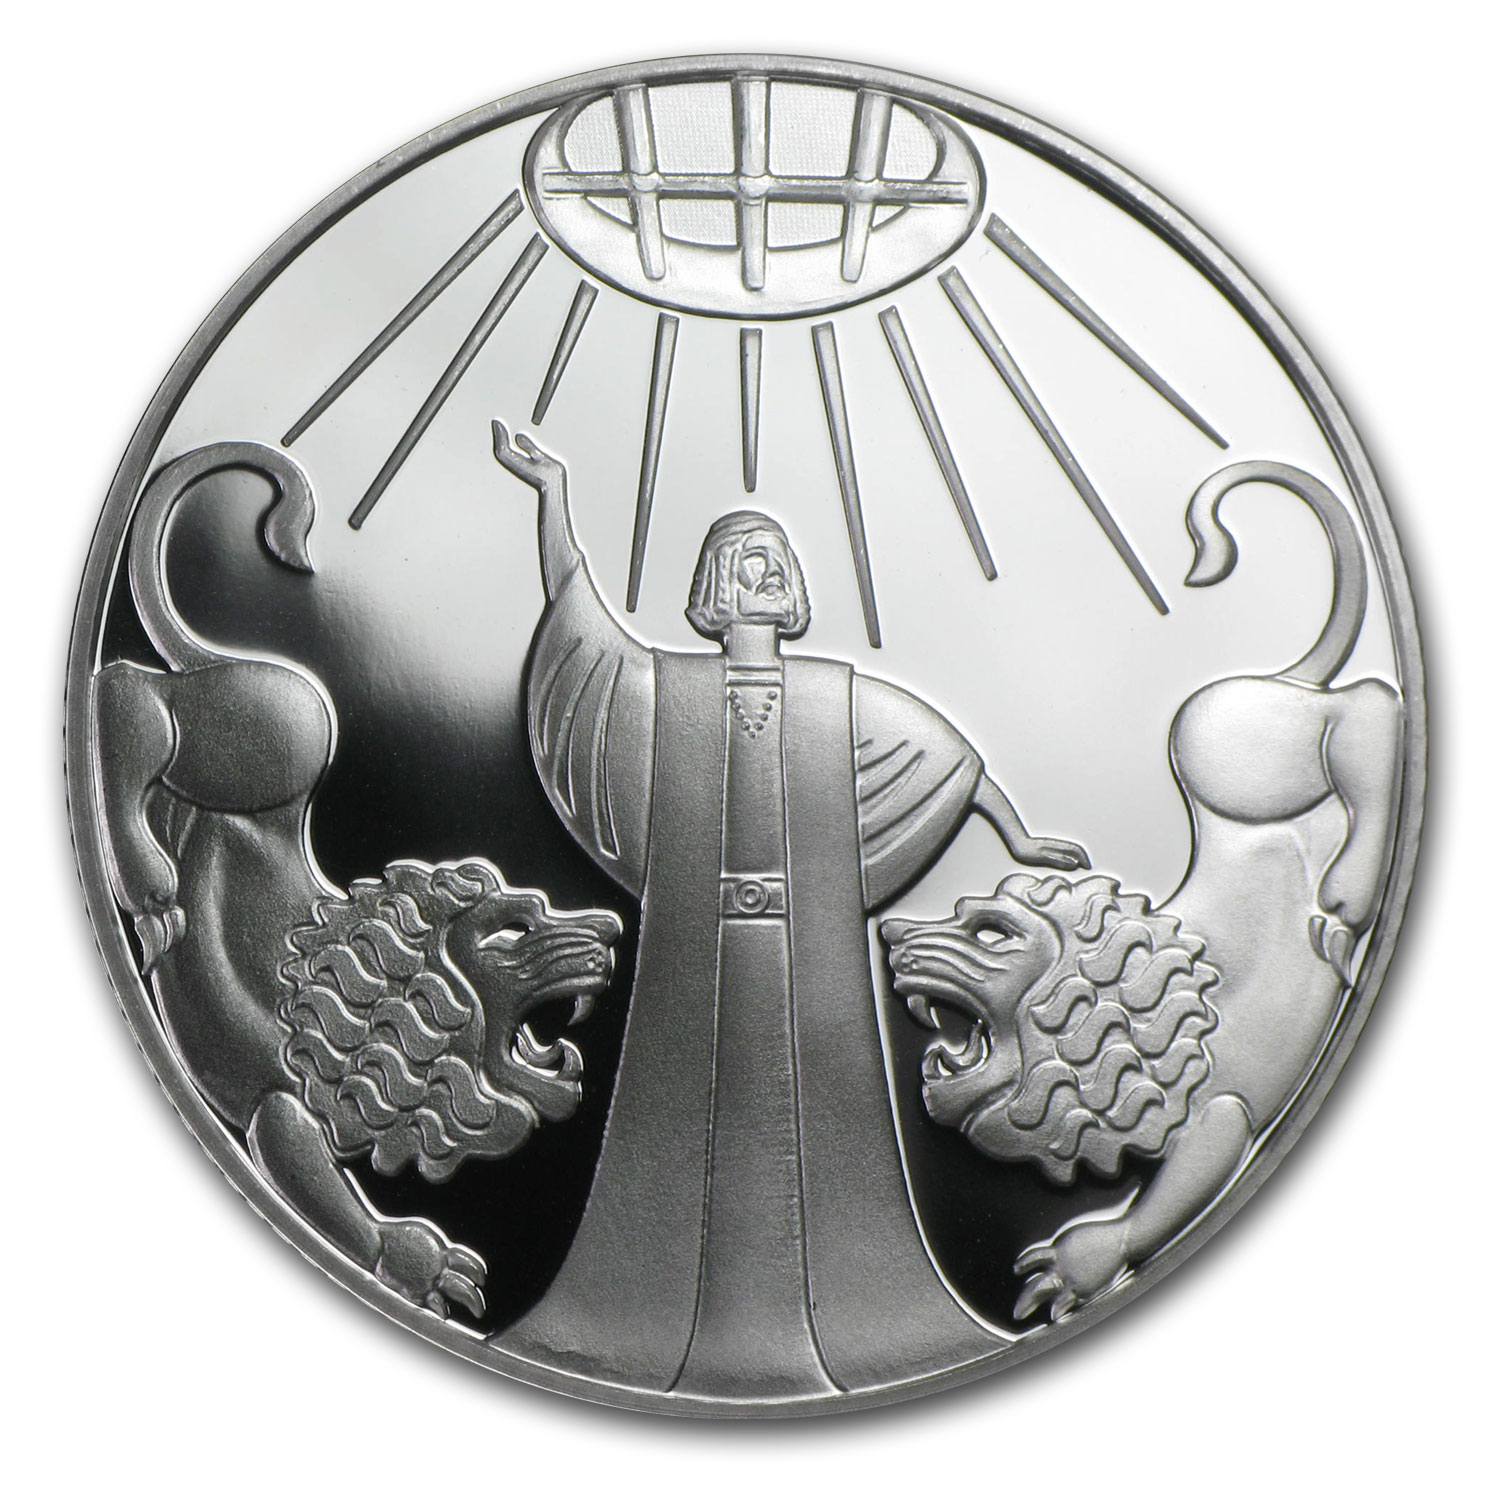 2012 Israel Silver 2 NIS Daniel in the Lion's Den Proof